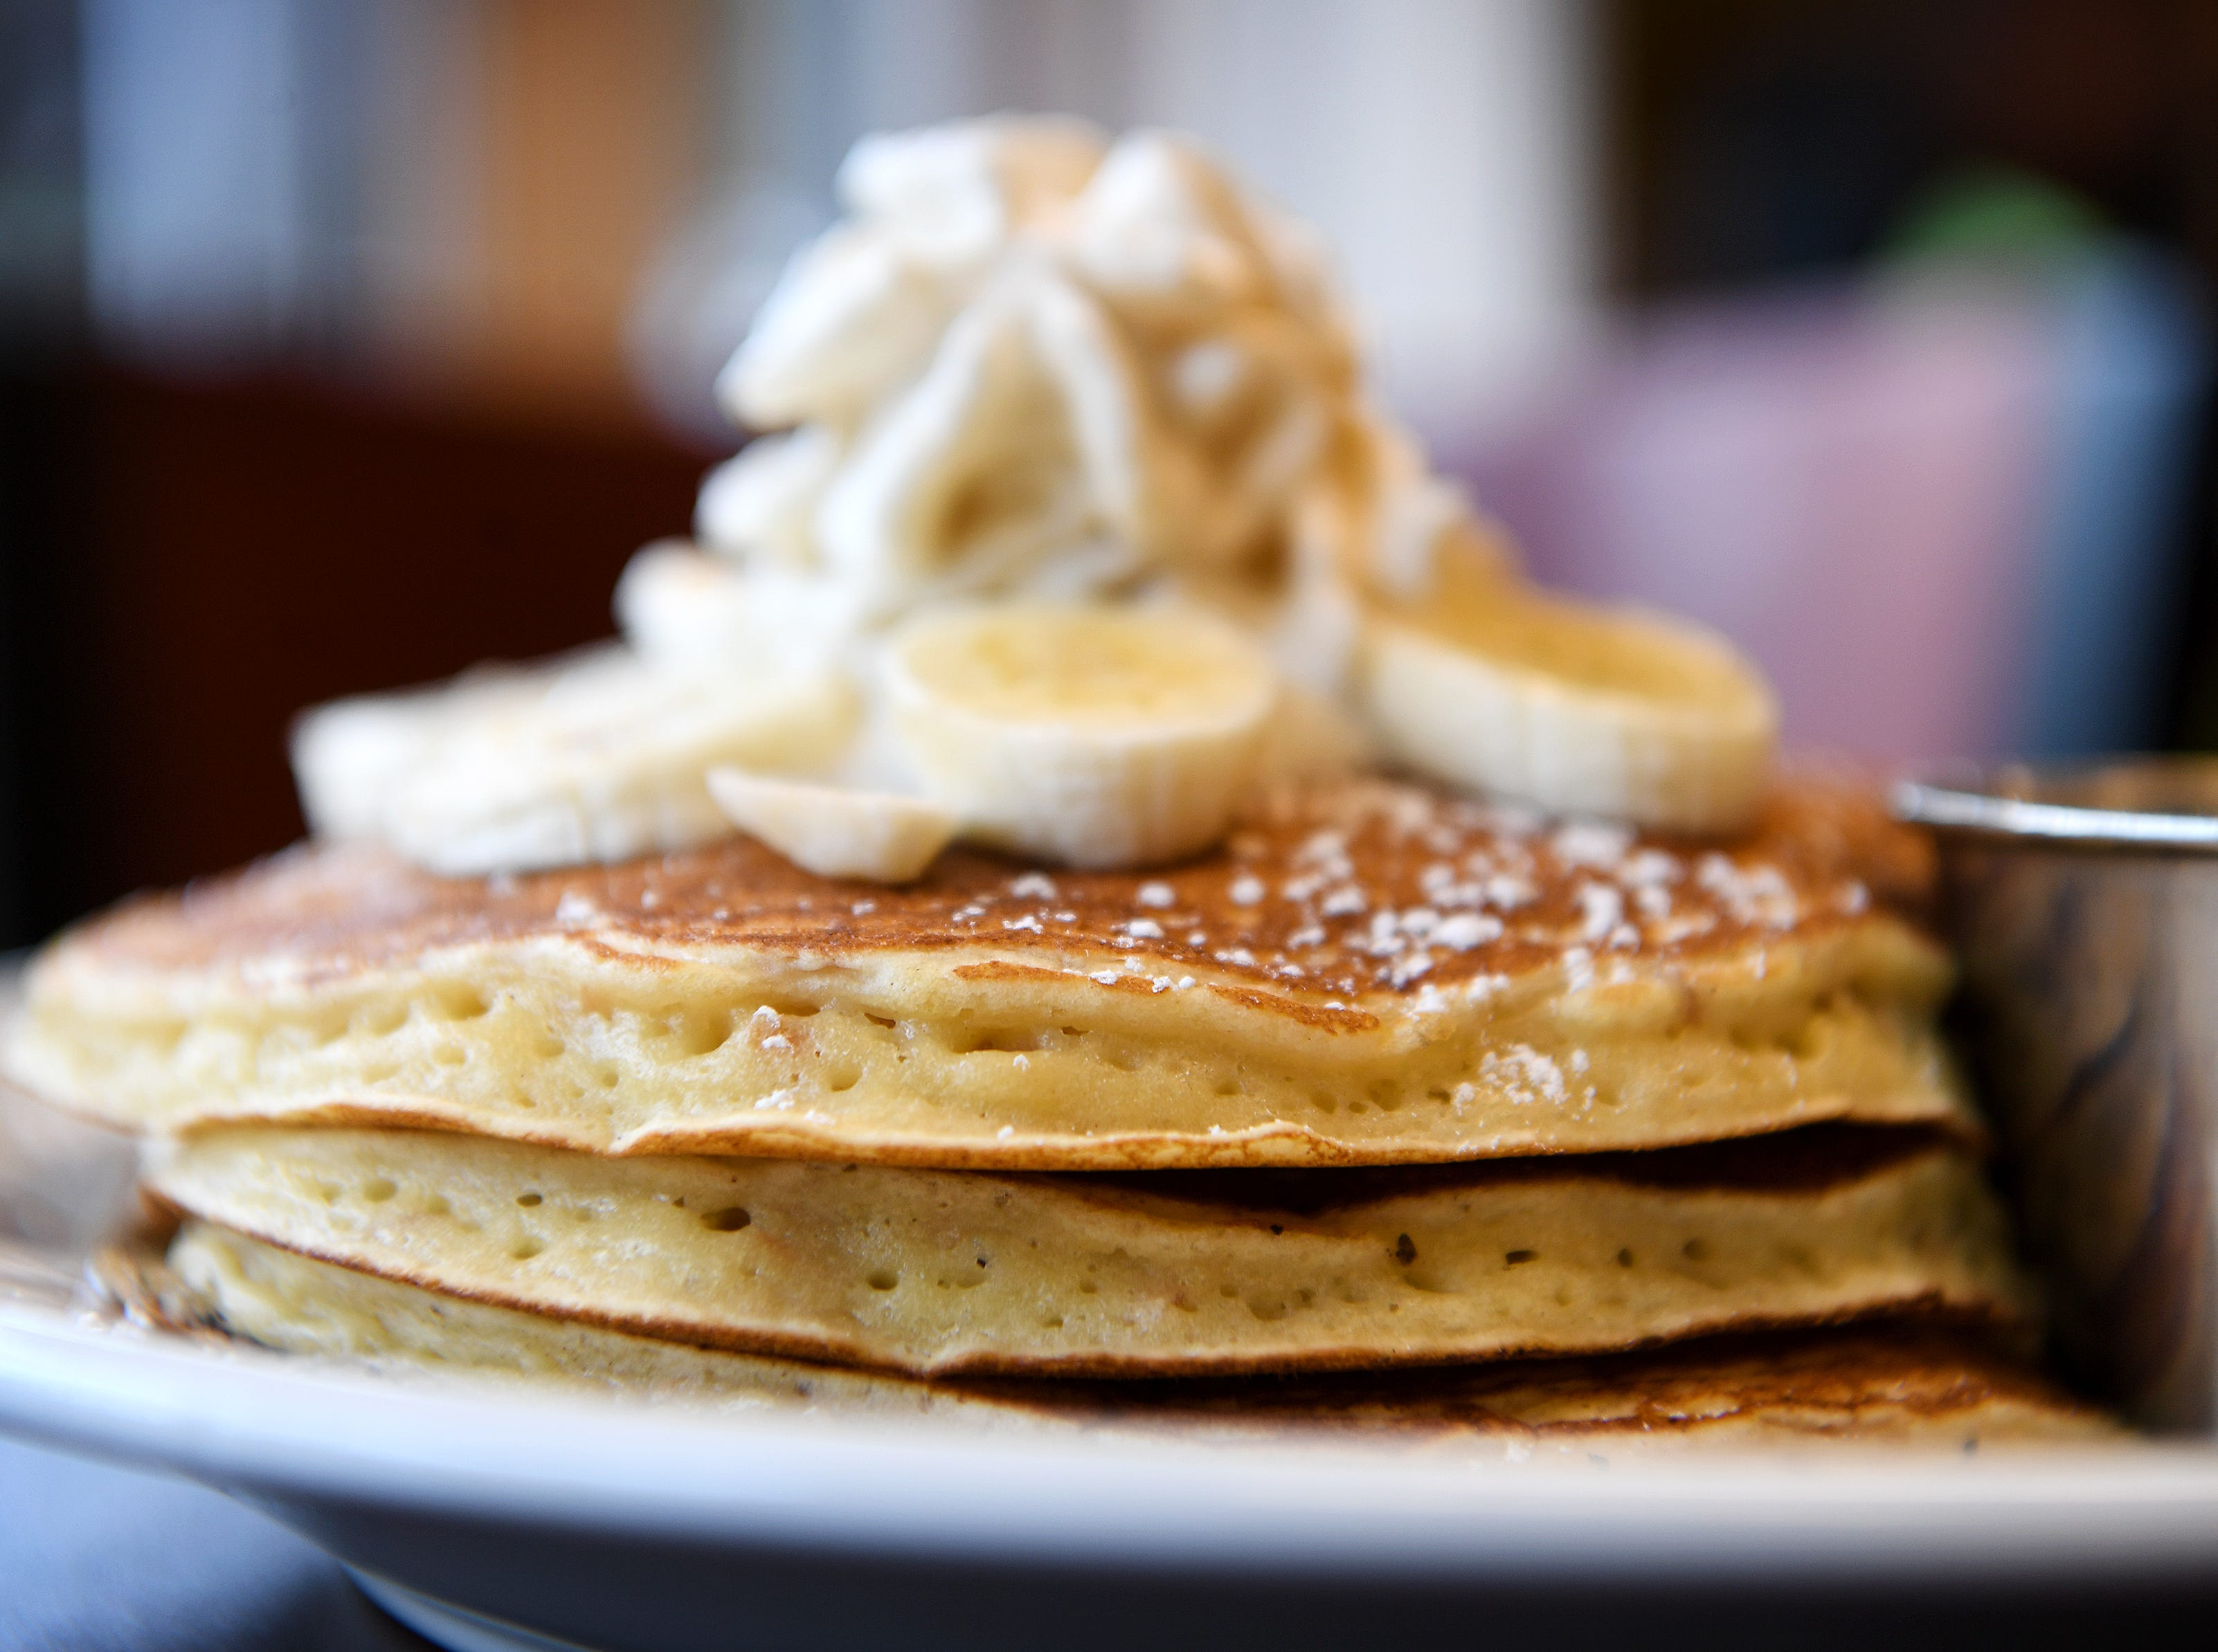 The ginger ricotta and coconut flakes pancakes at Abeja's House Cafe are topped with fresh bananas, whipped cream, and powder sugar and served with maple syrup on the side.